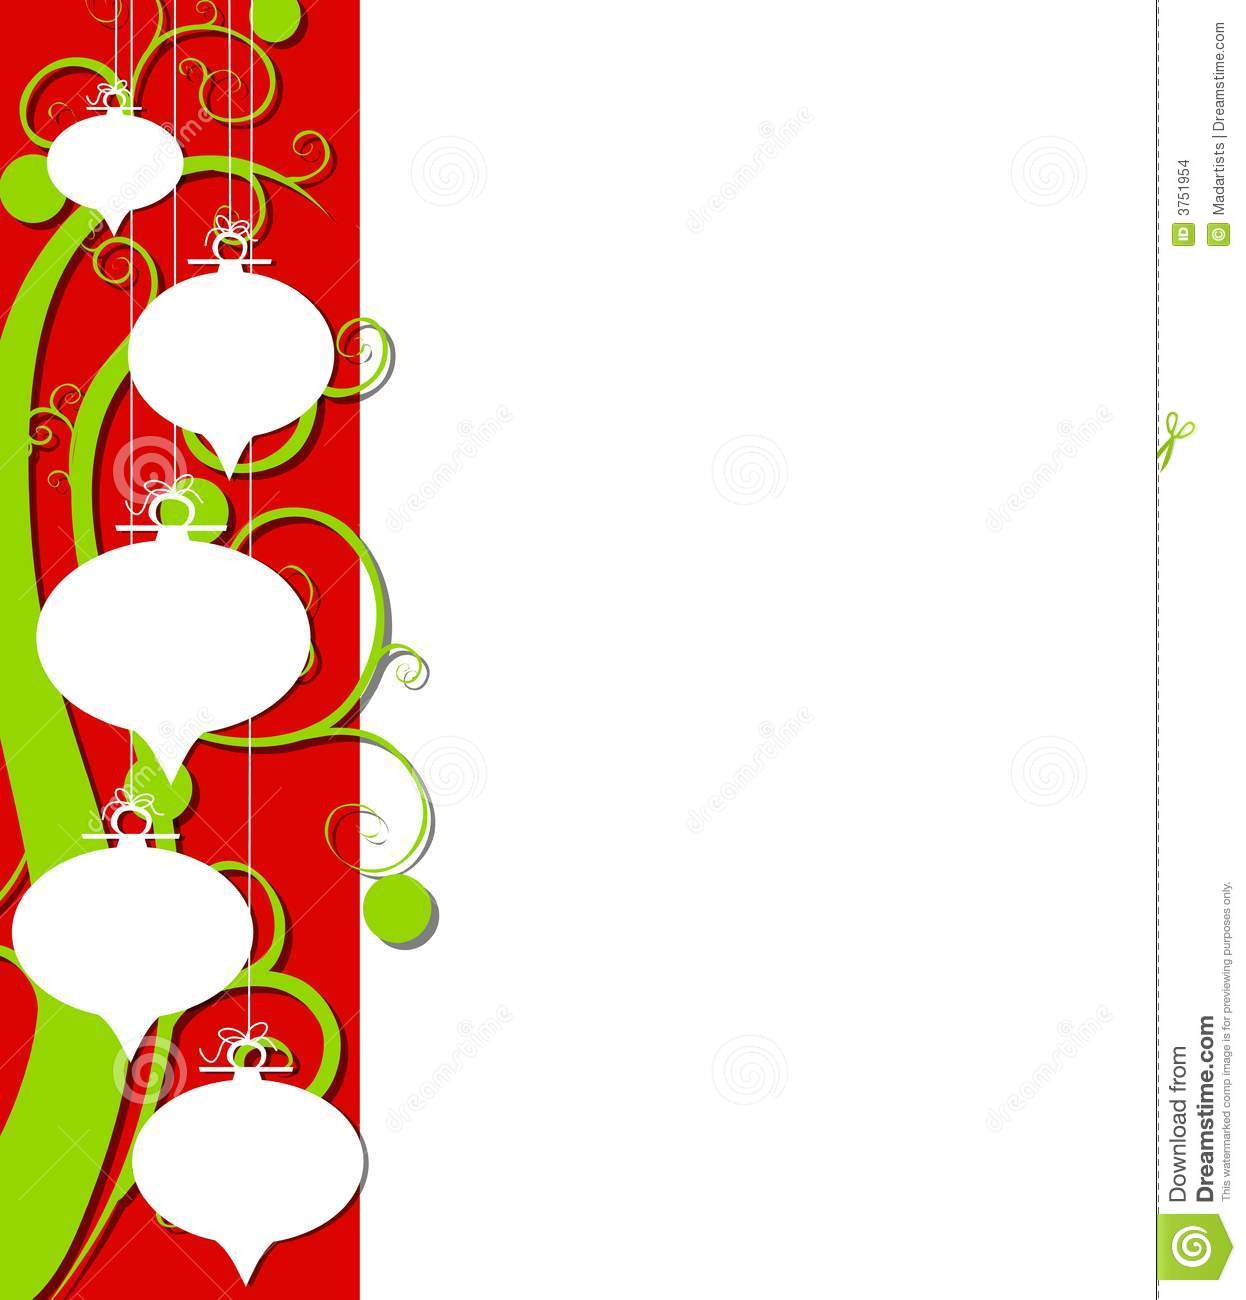 abstract retro christmas border stock illustration illustration of rh dreamstime com christmas borders clip art religious christmas borders clip art religious